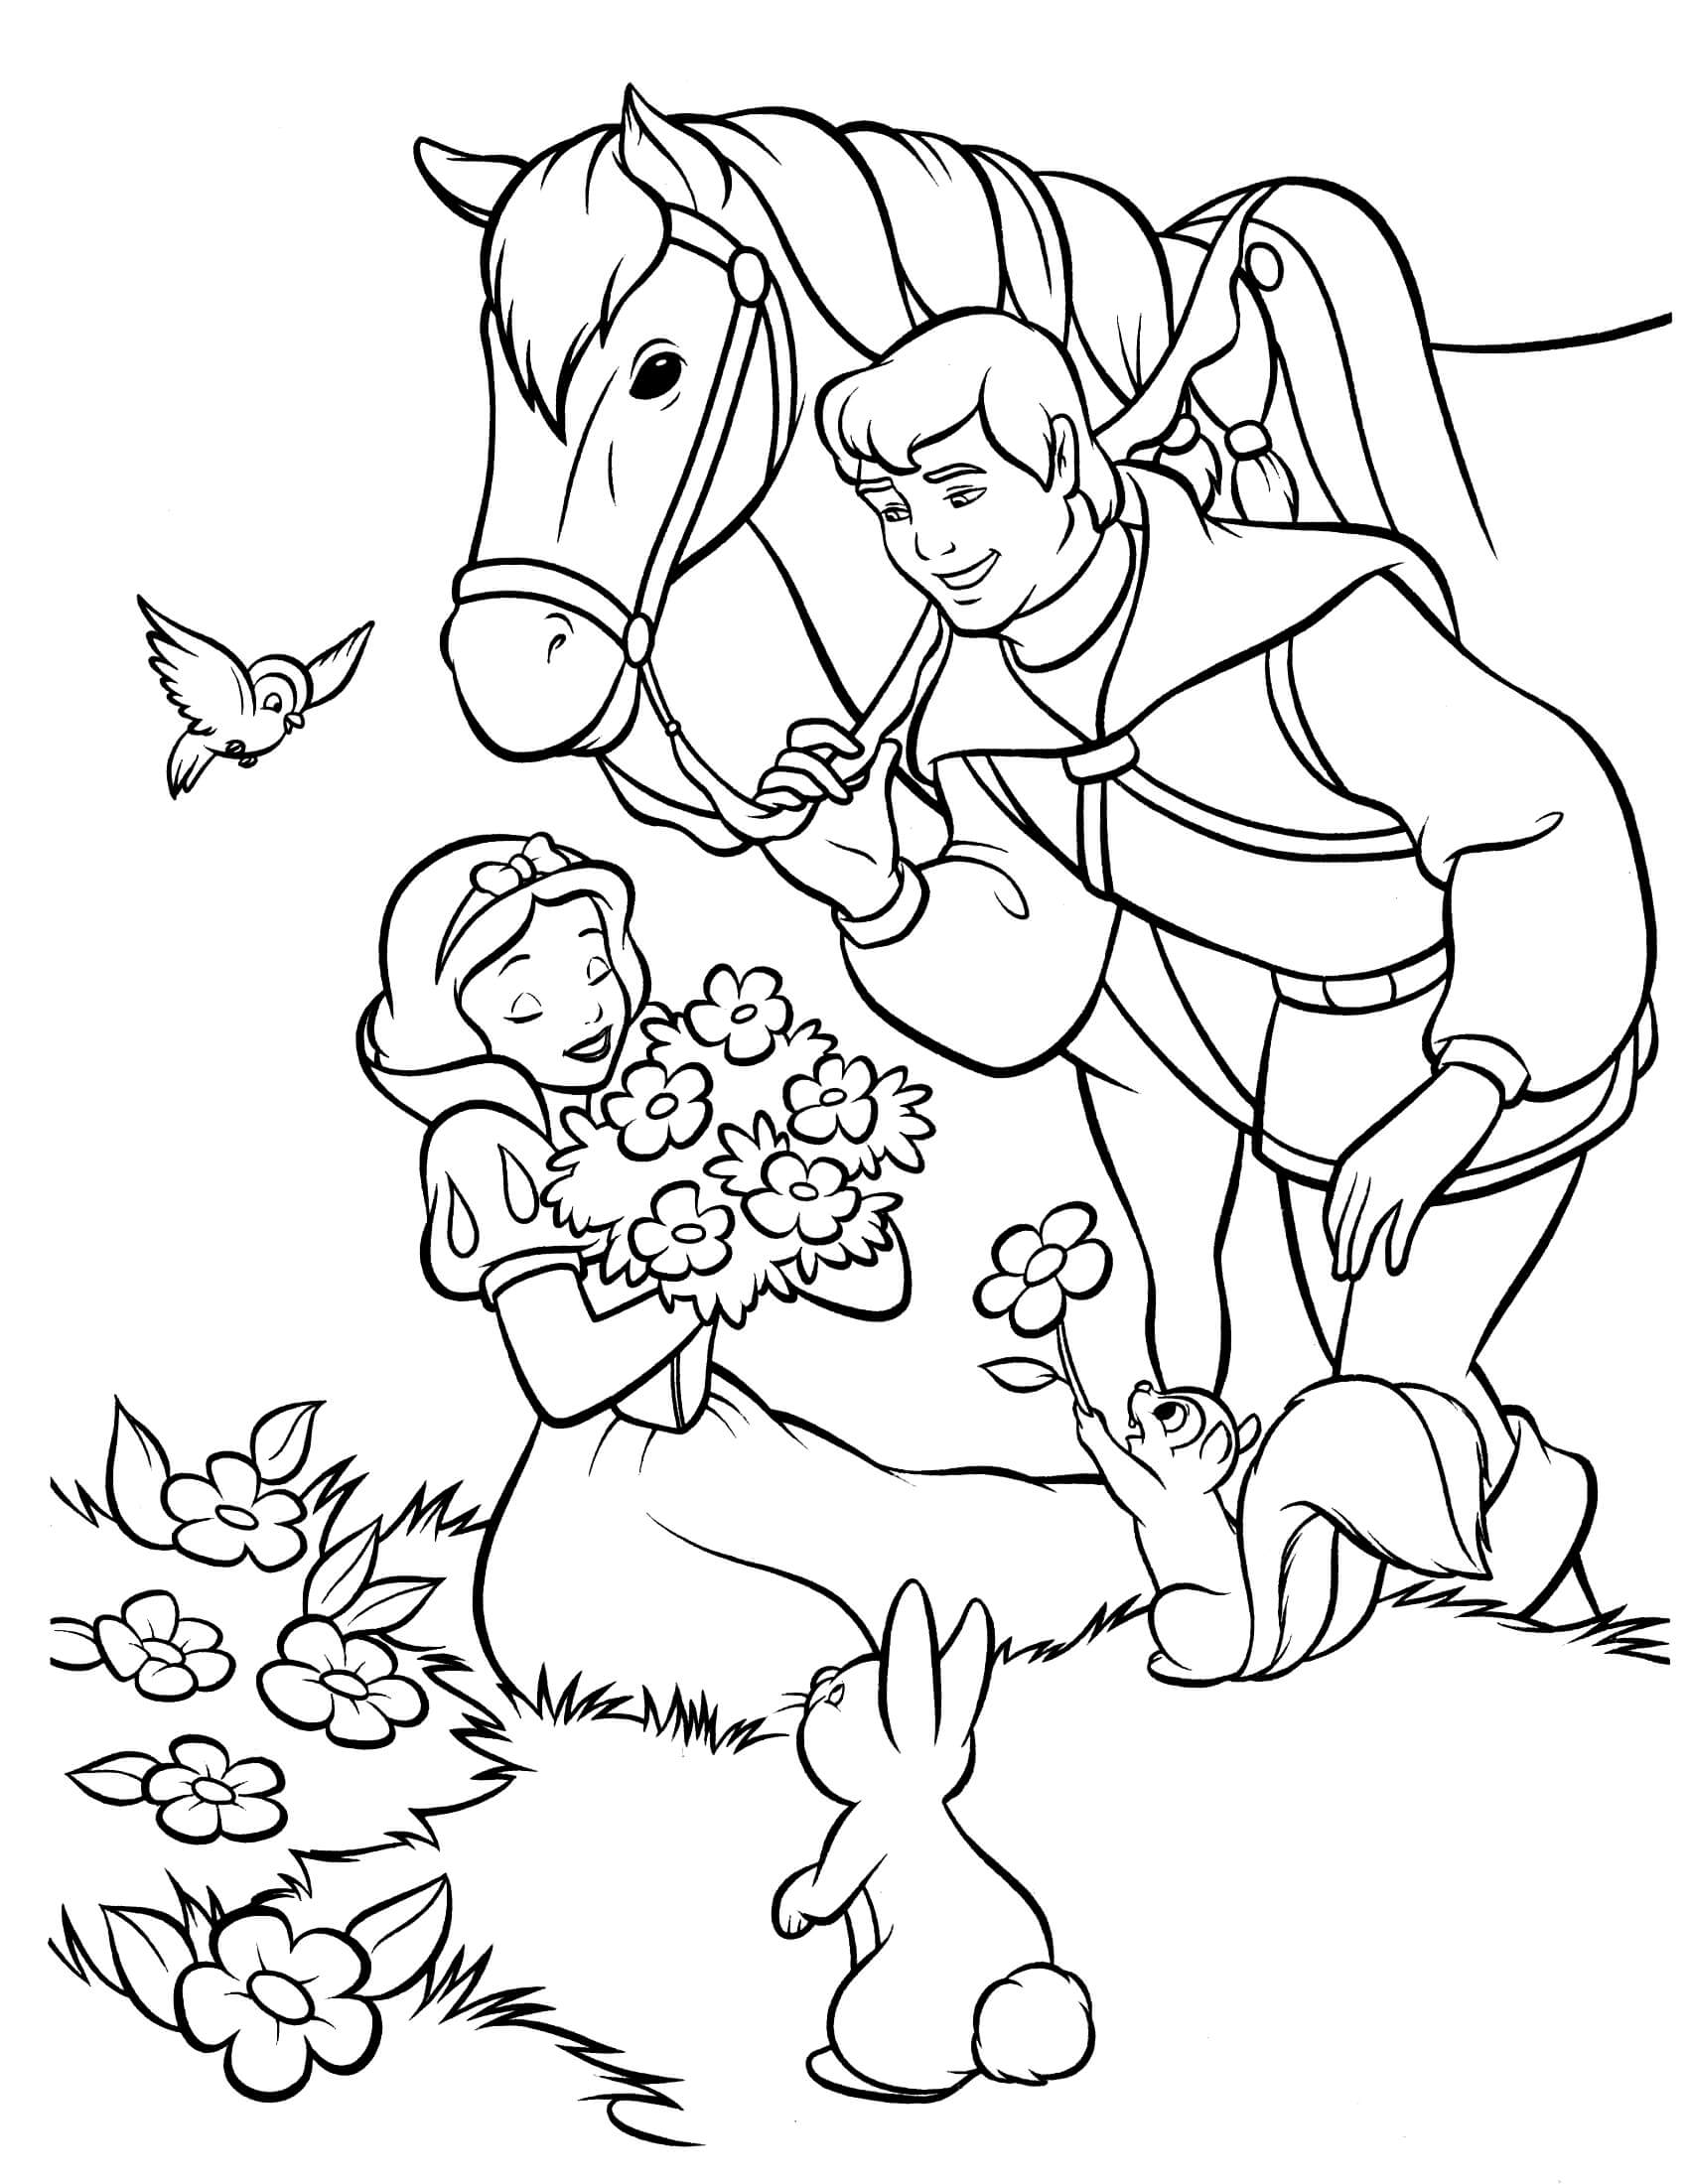 free snow white coloring pages snow white coloring pages best coloring pages for kids coloring free white snow pages